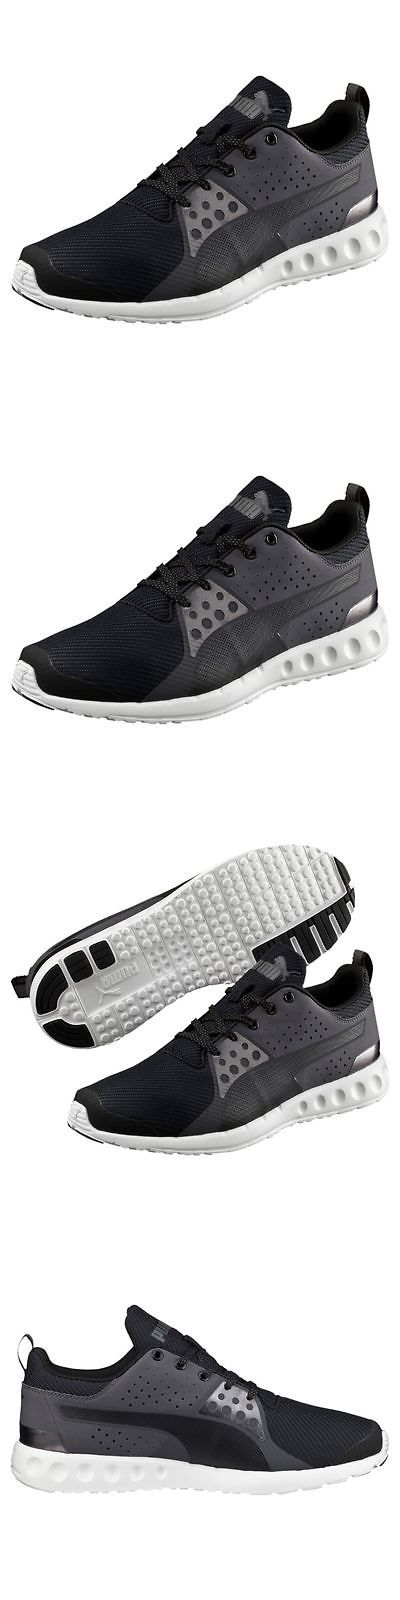 Men Shoes: Puma Valor Mesh Mens Running Shoes BUY IT NOW ONLY: $39.99